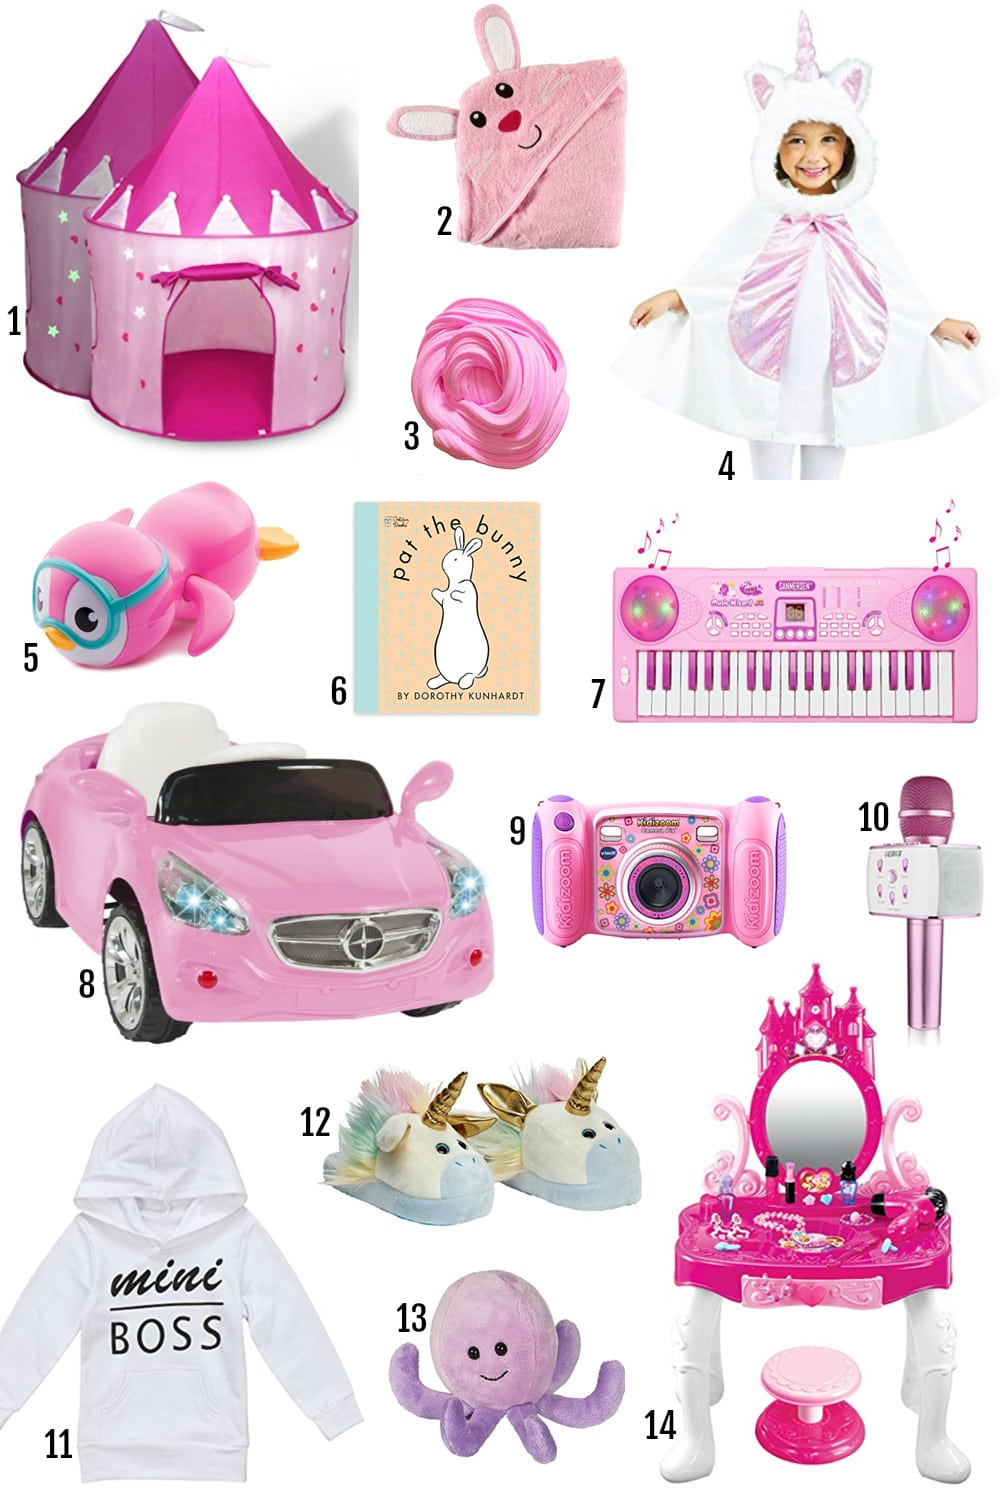 gifts for toddlers | gifts for young girls | educational gifts for her | Disney | mercedes benz car for toddler | books, makeup vanity, unicorn cape, princess playground, pink gifts, slime